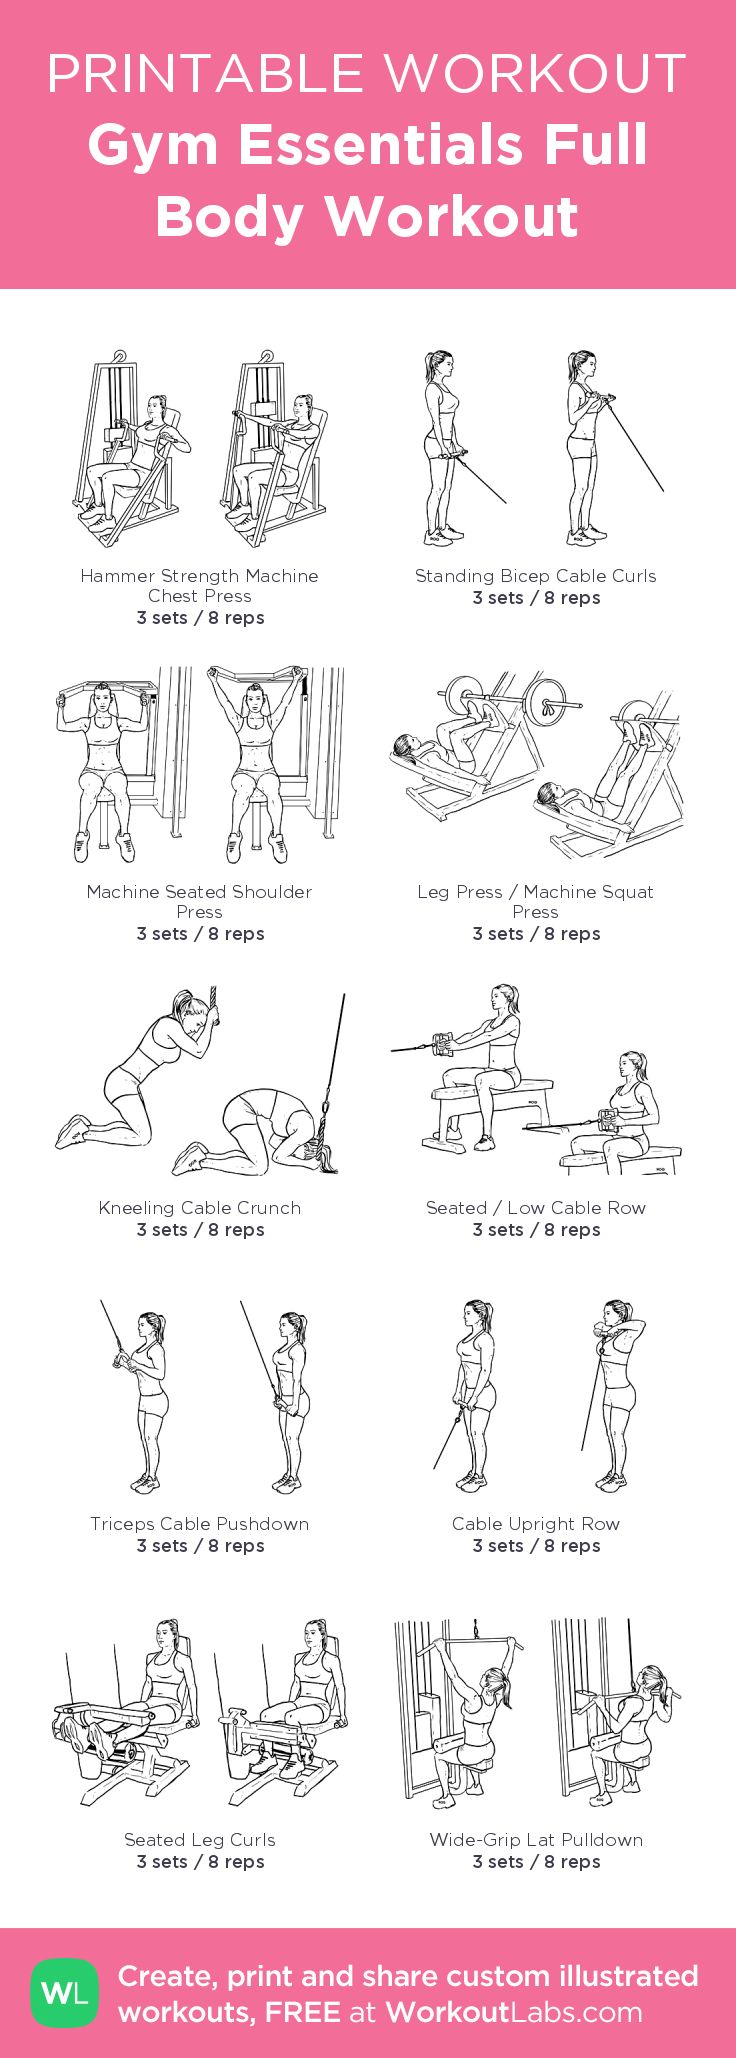 Gym Essentials Full Body Workout: my visual workout created at WorkoutLabs.com • Click through to customize and download as a FREE PDF! #customworkout                                                                                                                                                     More